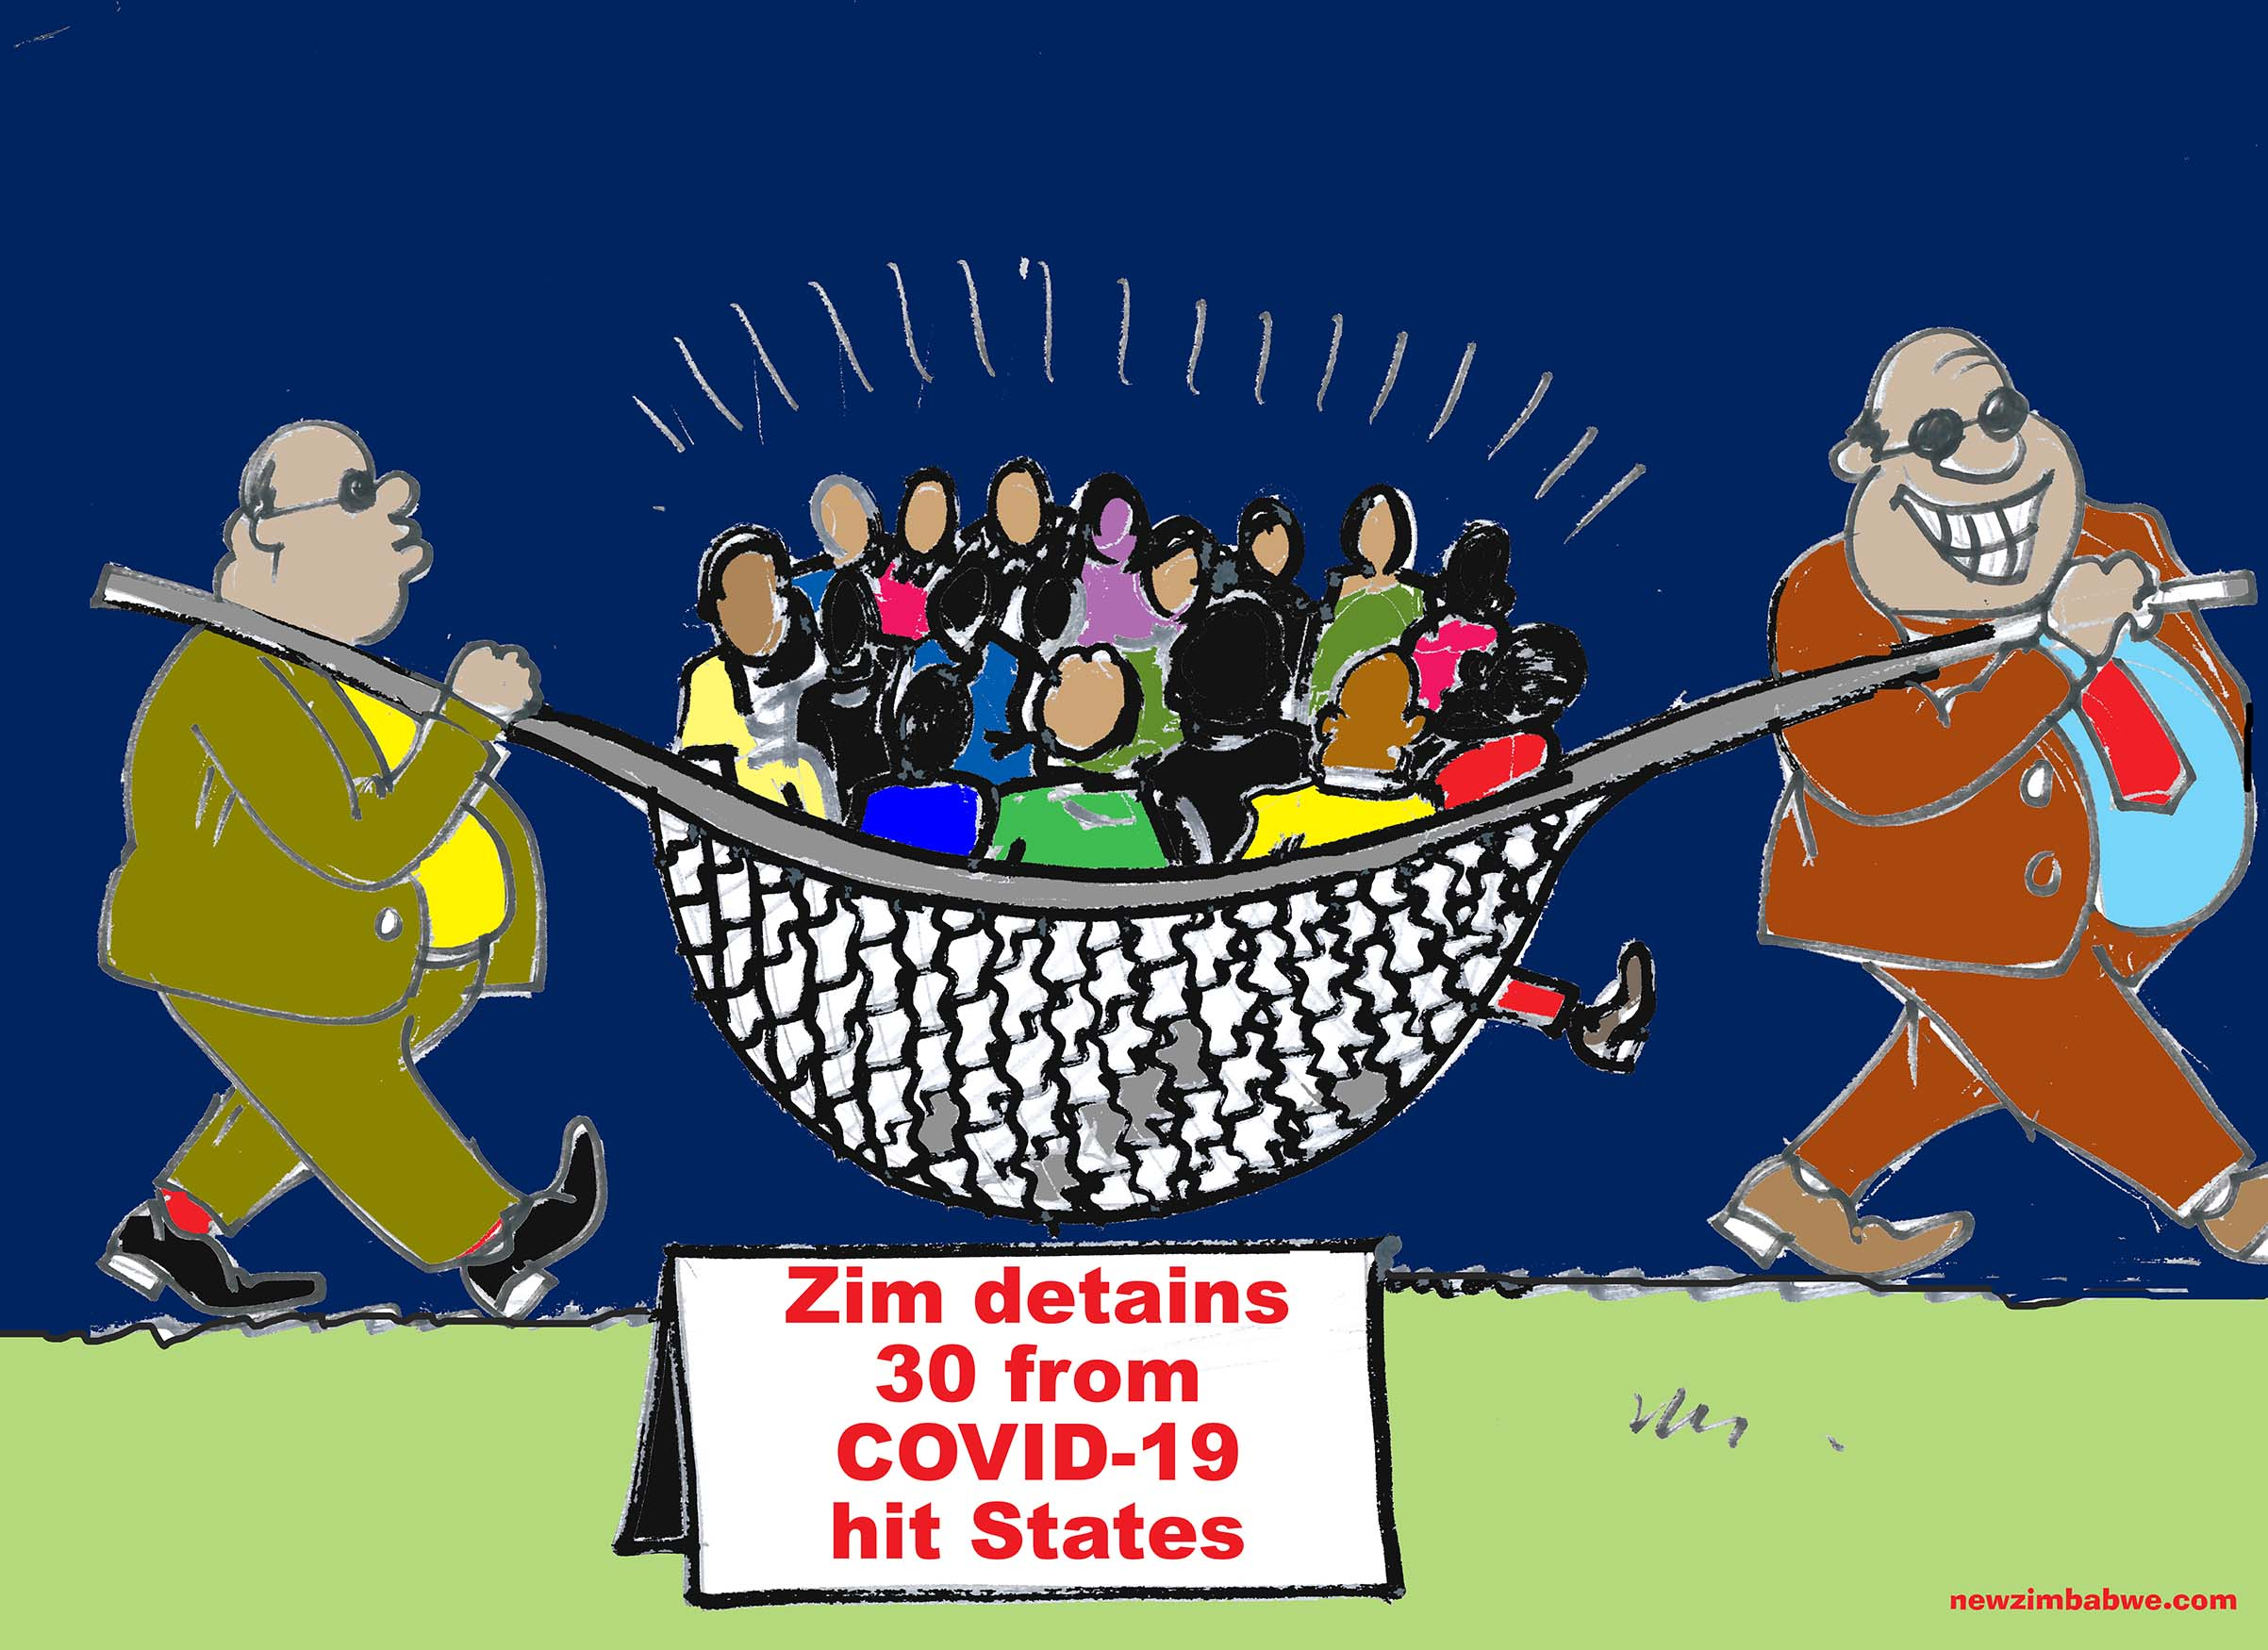 Zim detains 30 covid-19 suspects